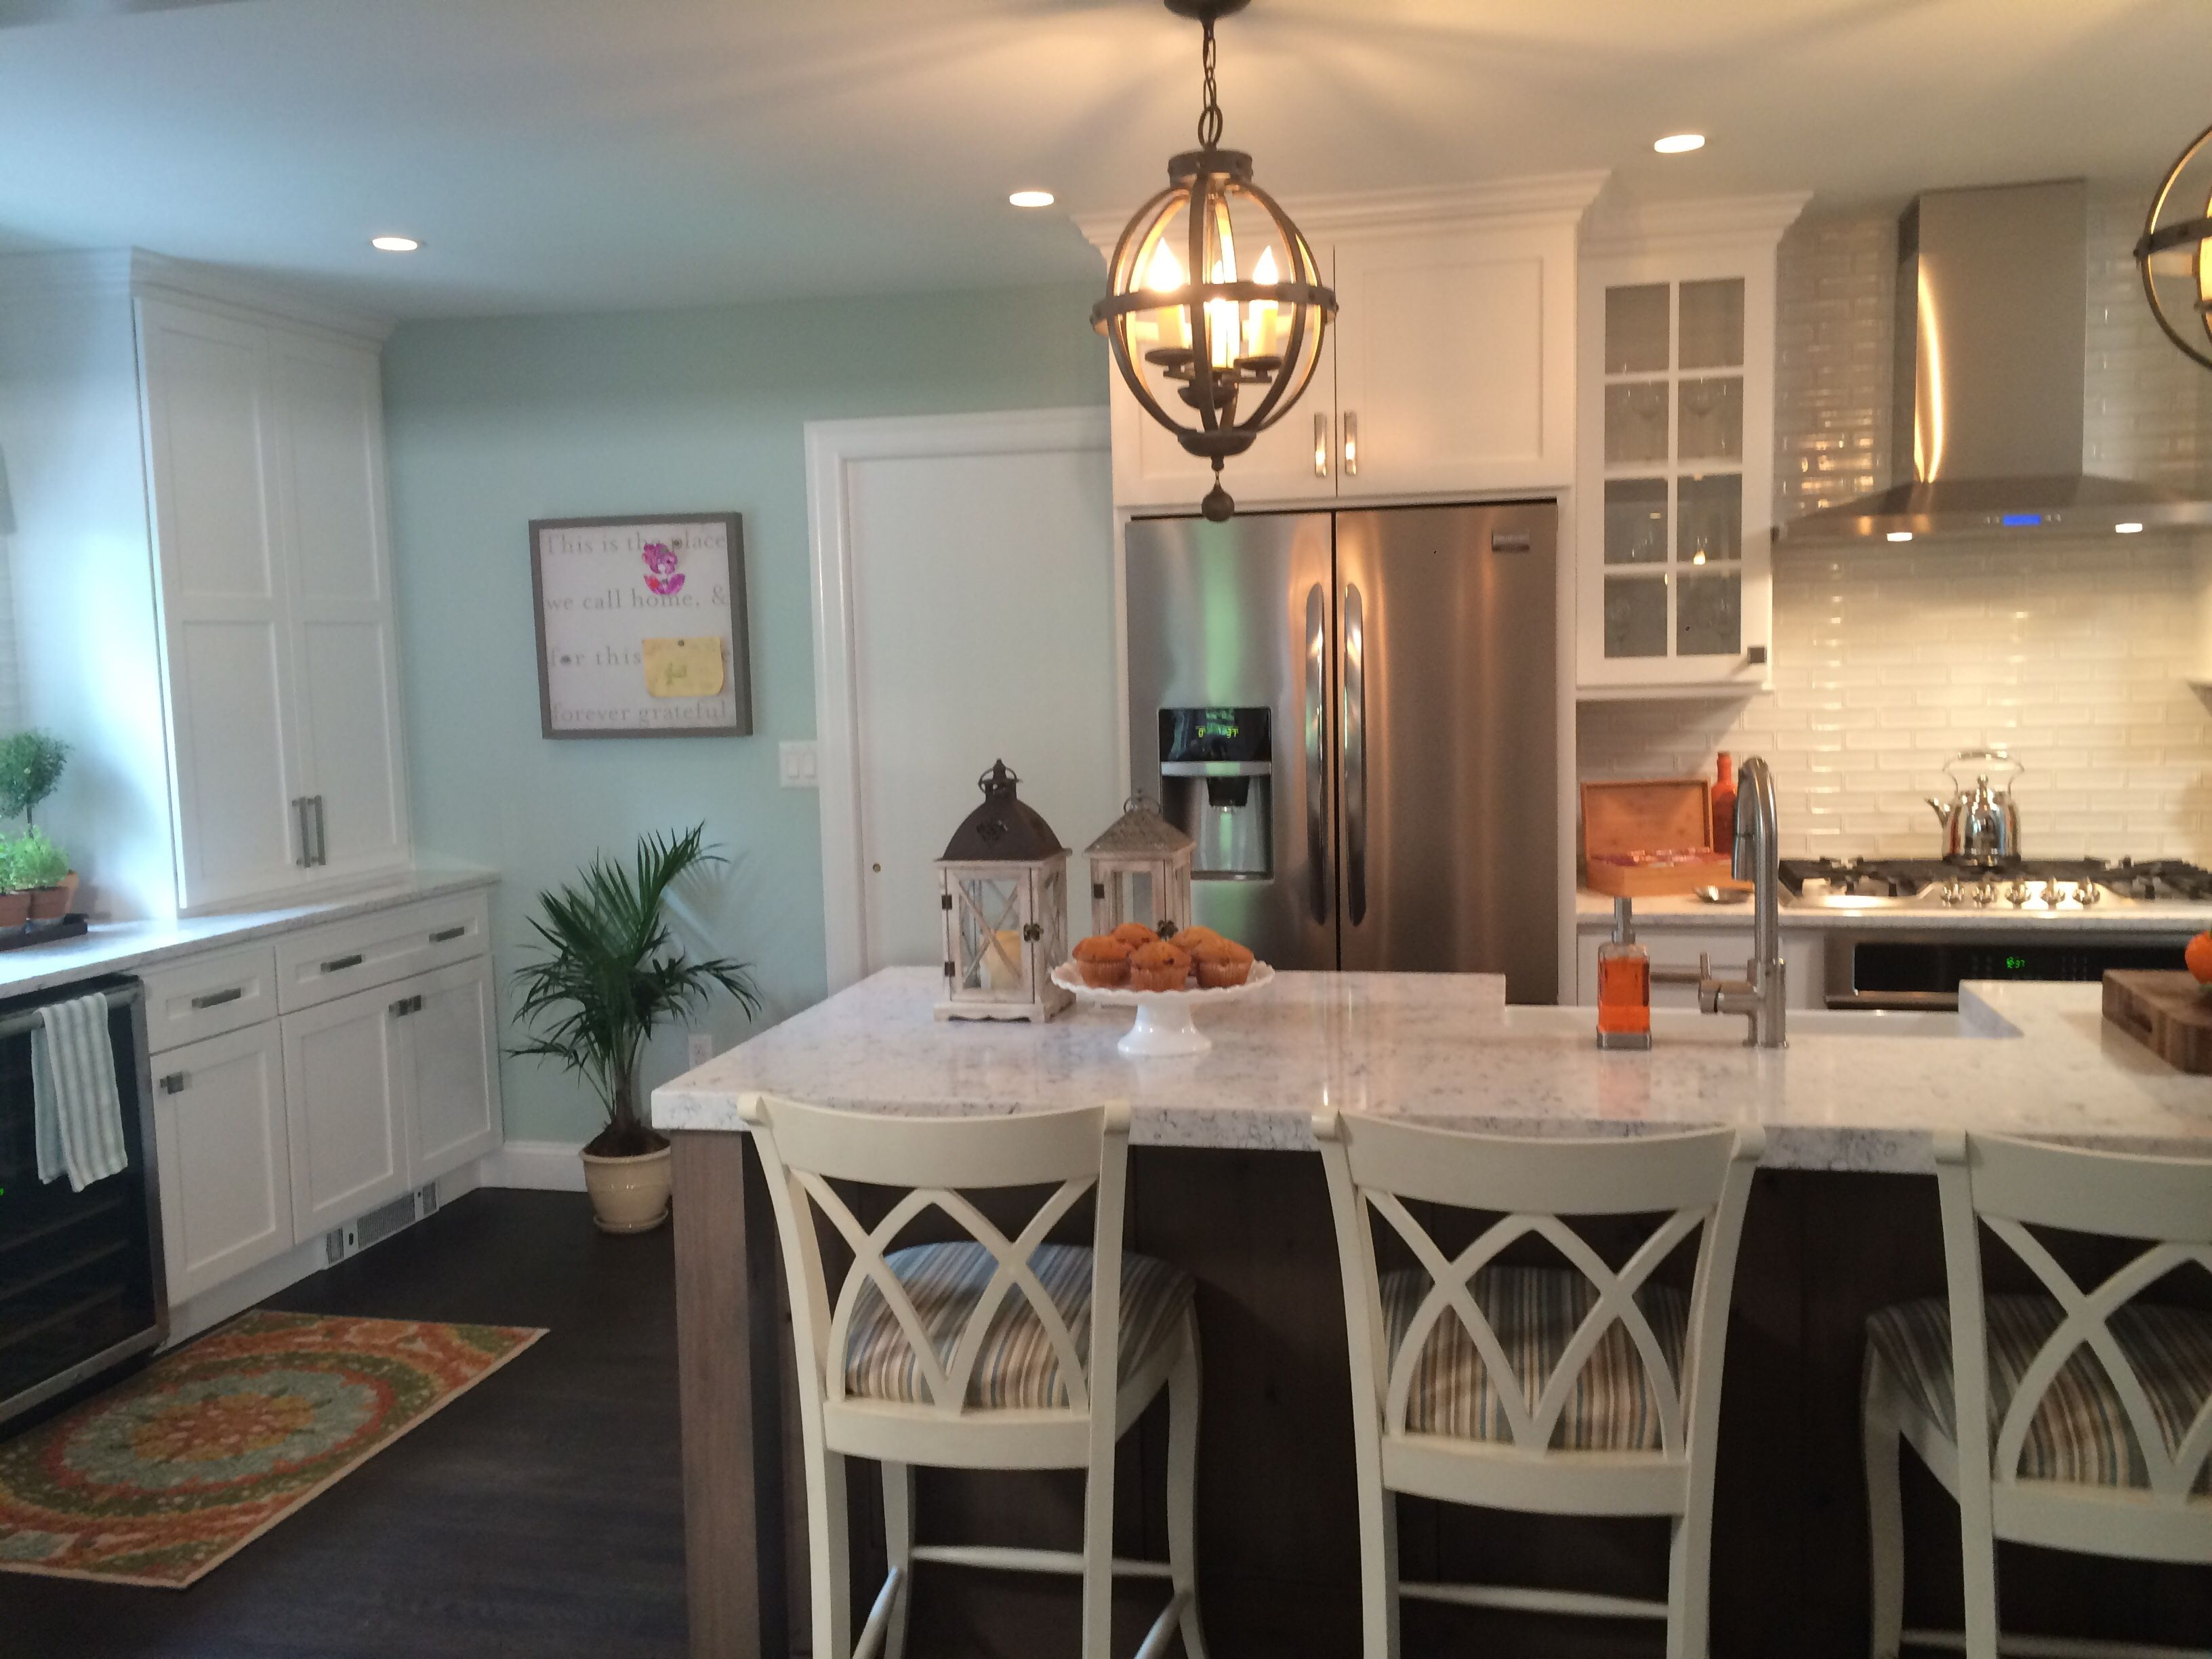 Kevin And Shirley S Kitchen On Property Brothers Features